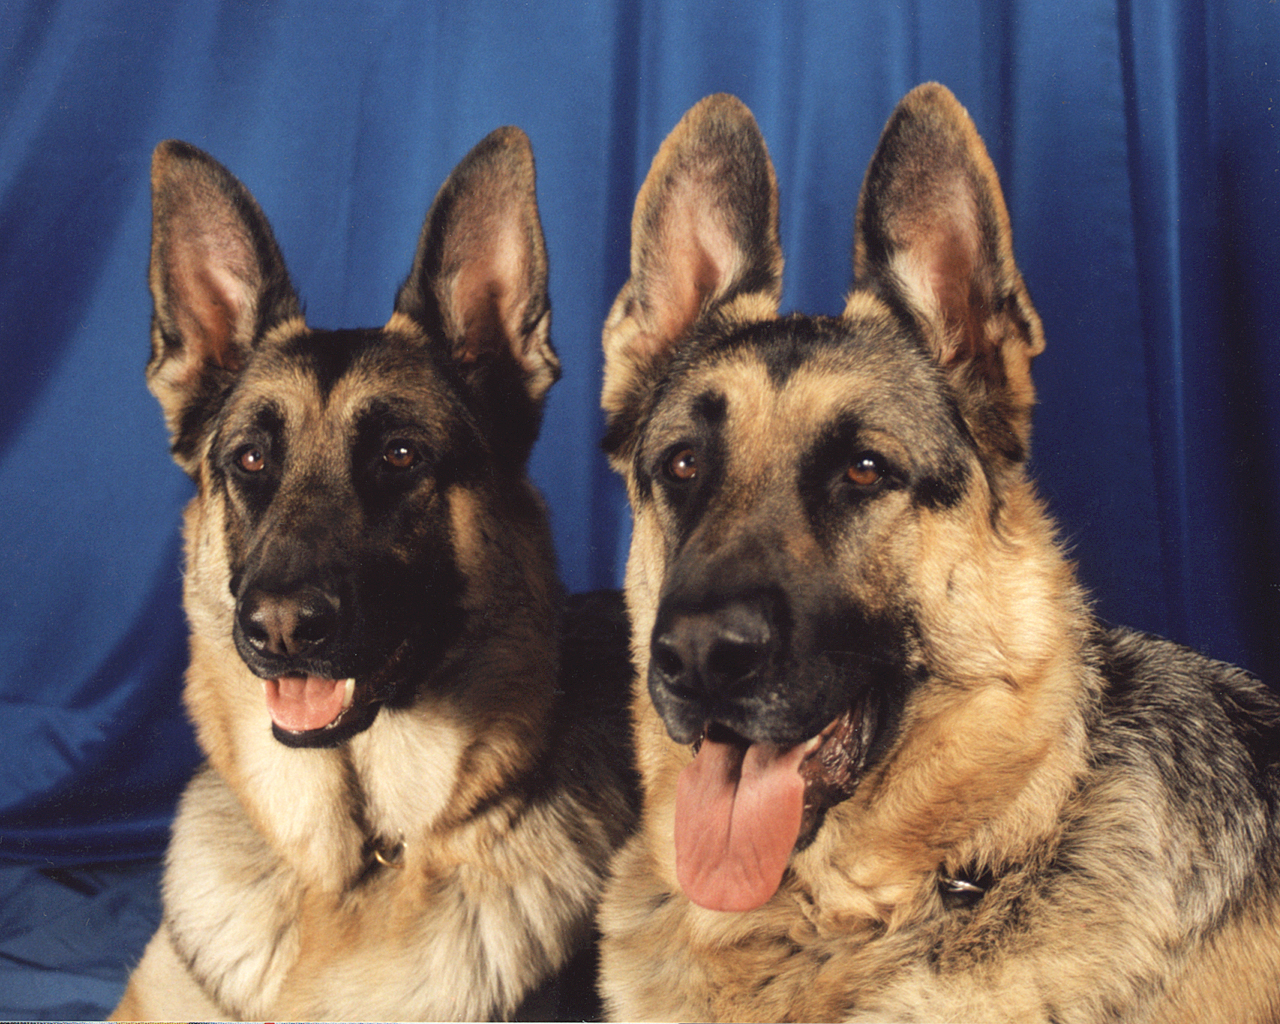 File:German Shepherd Dogs portrait.jpg - Wikimedia Commons